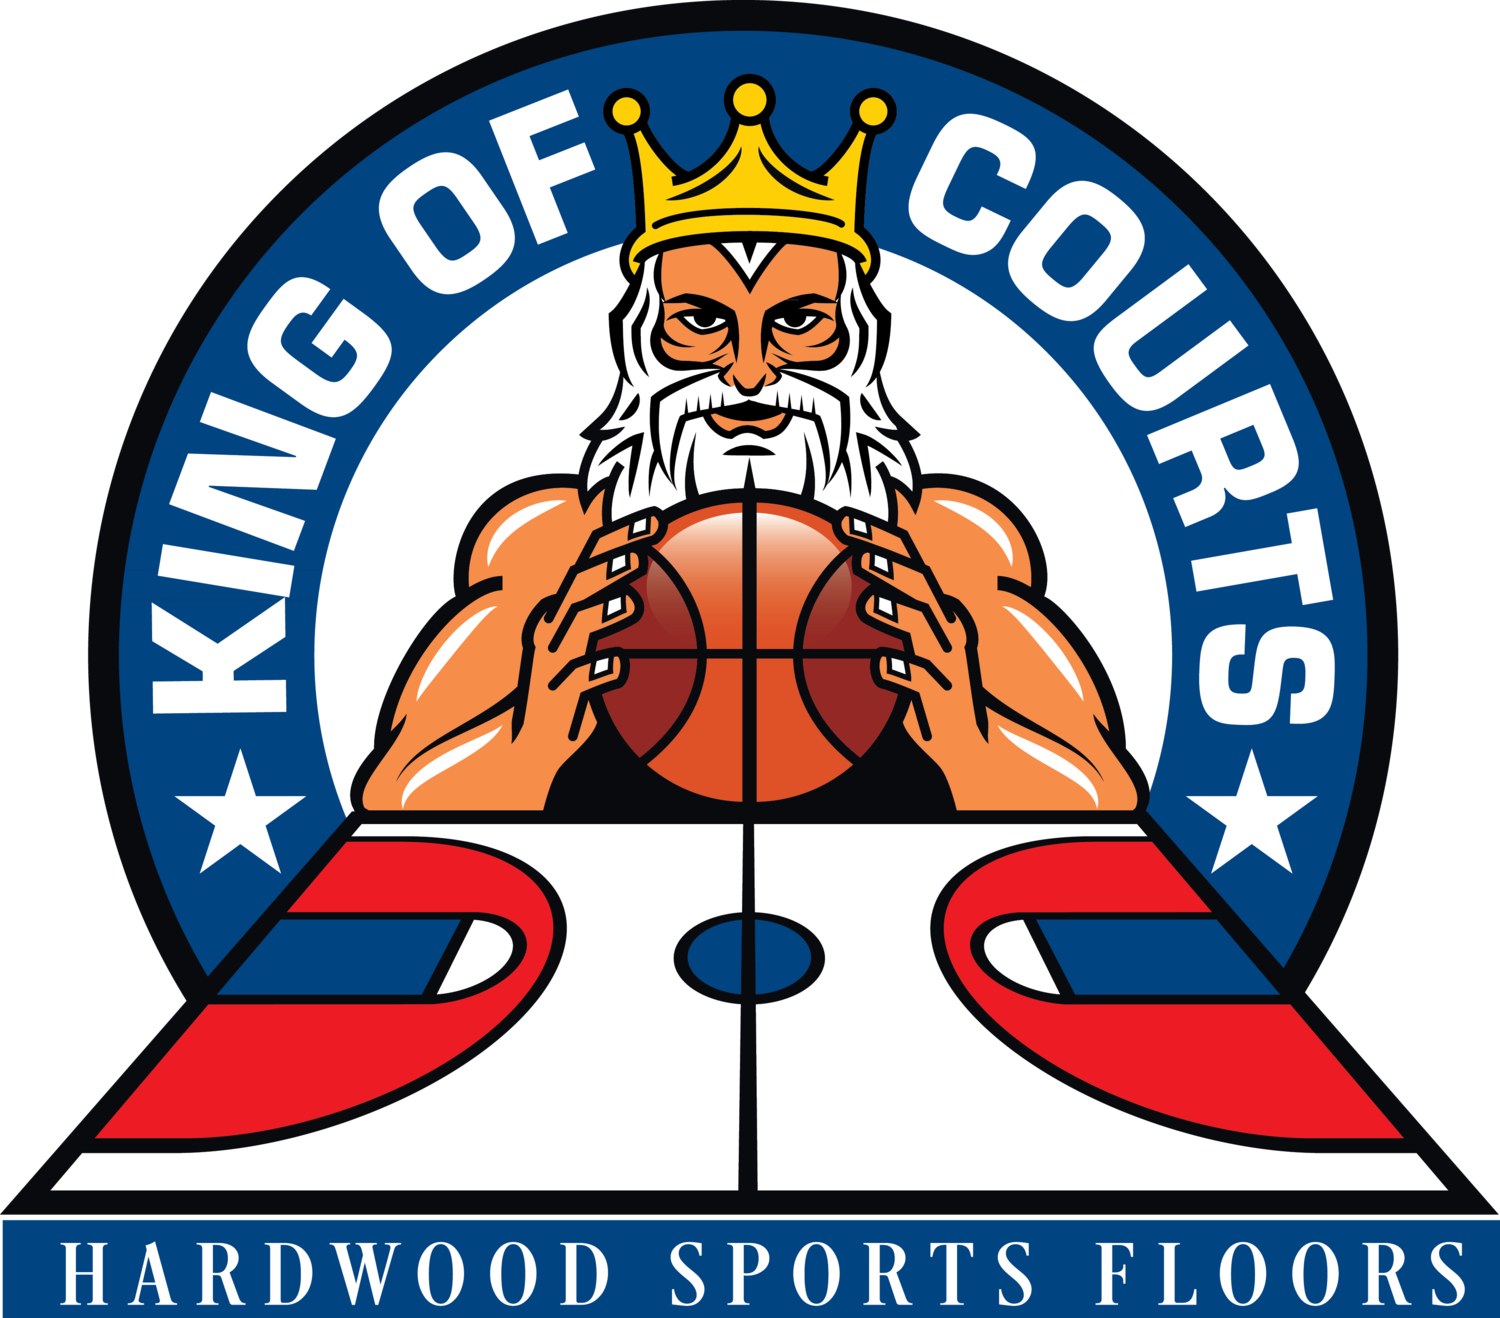 Hardwood basketball court clipart picture freeuse download King of Courts picture freeuse download